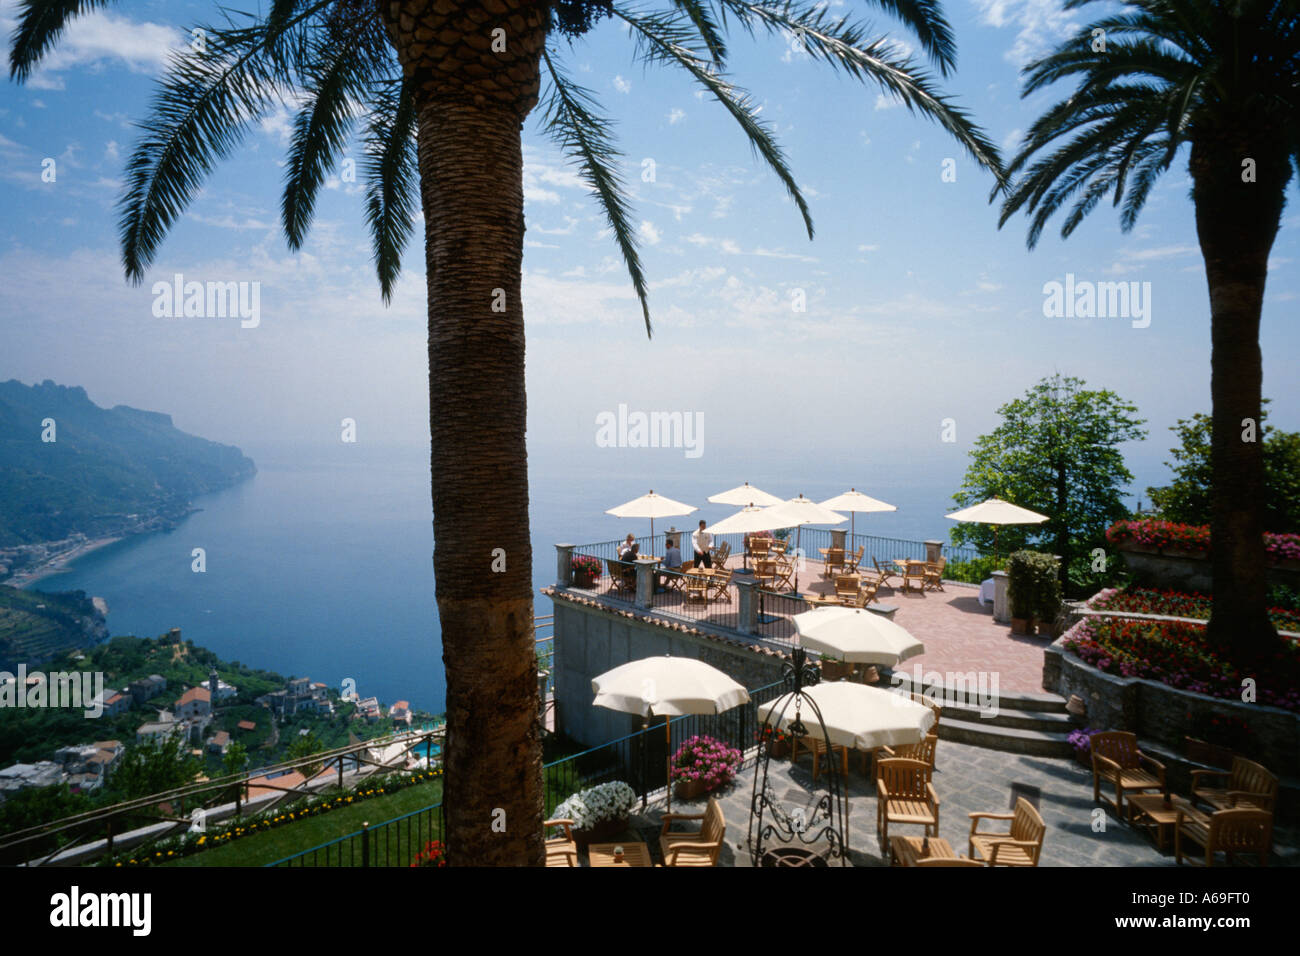 Ravello Amalfi Coast Italy View From The Terrace Of The Luxury Hotel